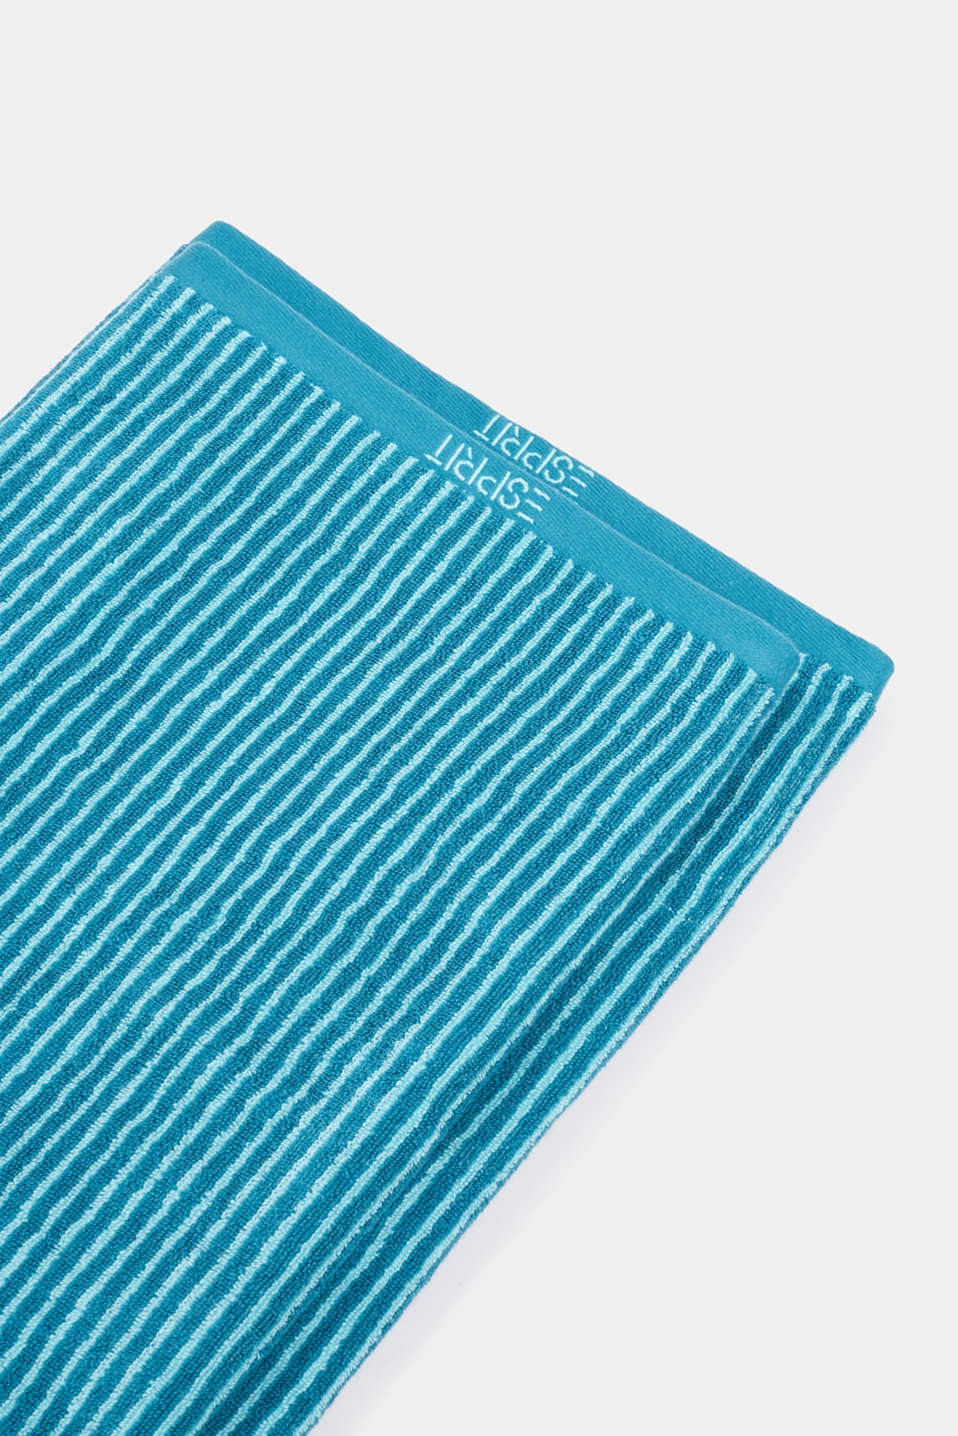 Esprit - Terry cloth towel, 100% cotton